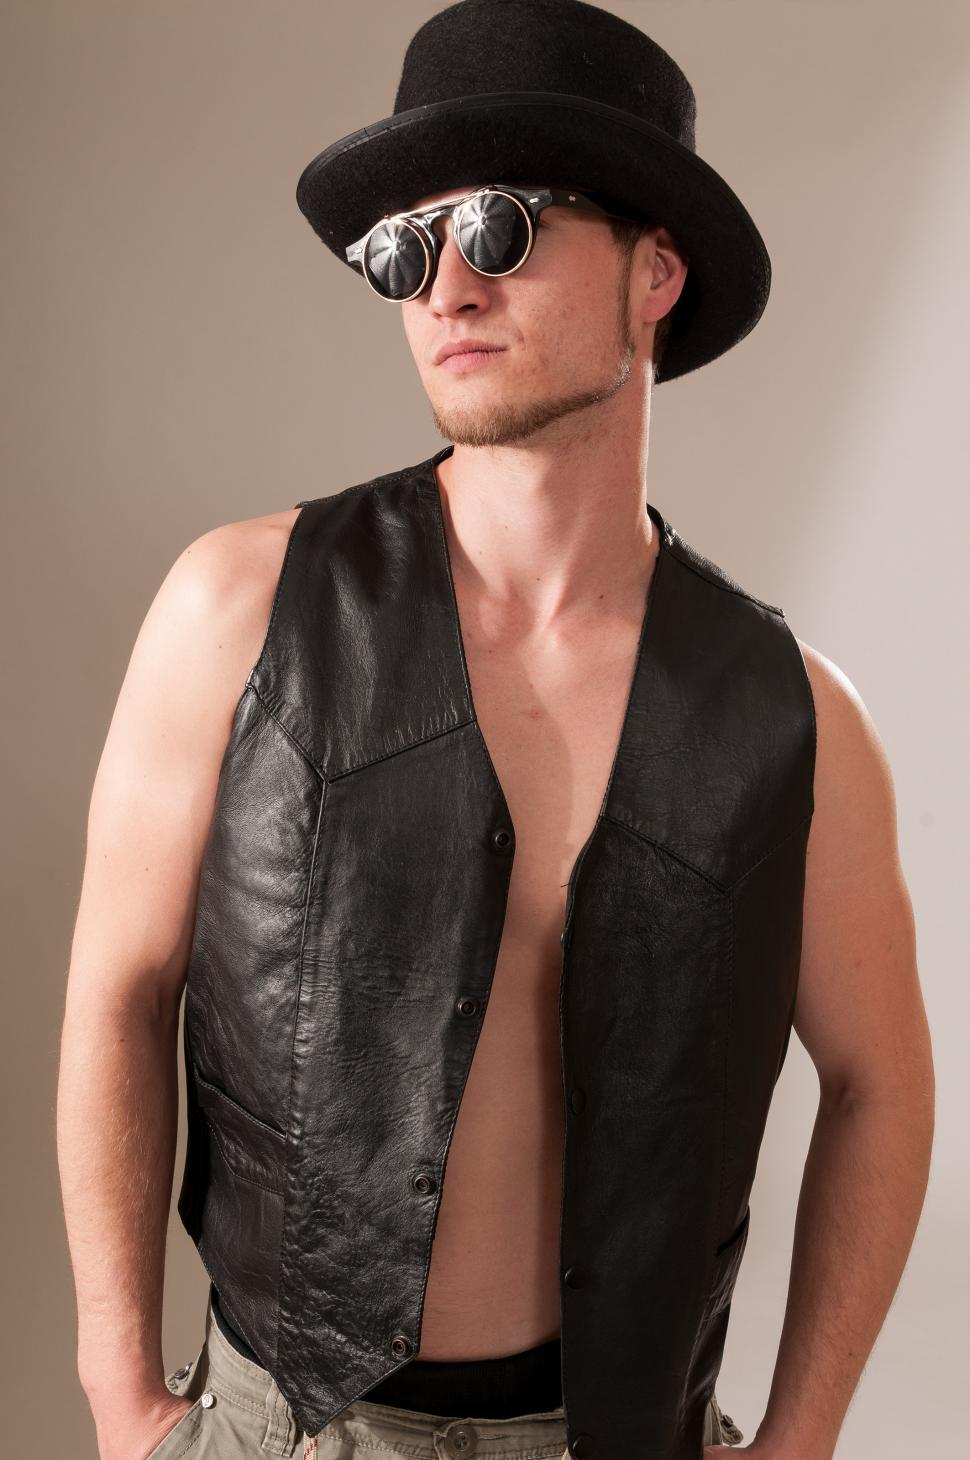 Download Free Stock Photo of Cool guy in a vest and top hat